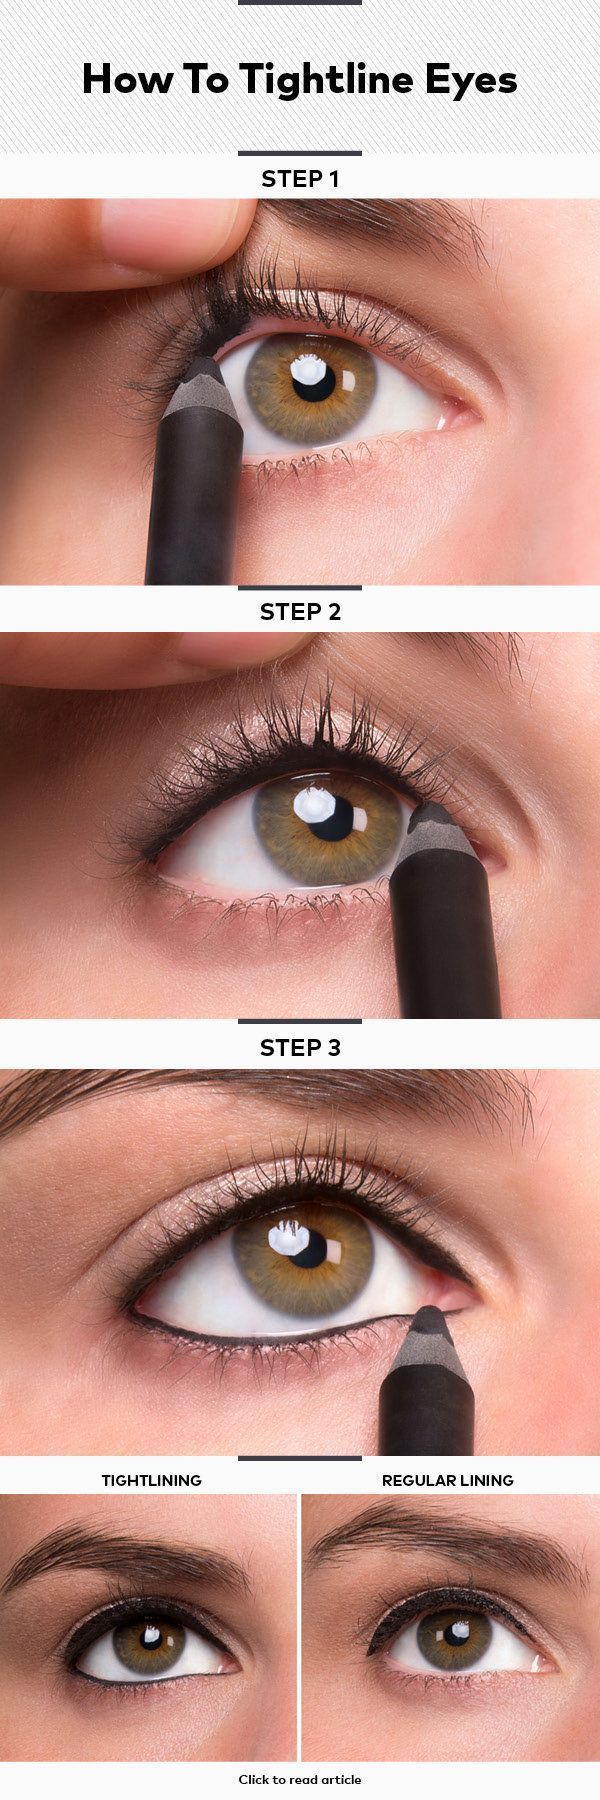 10 Super Basic Eye Makeup Ideas for Beginners - Pretty Designs